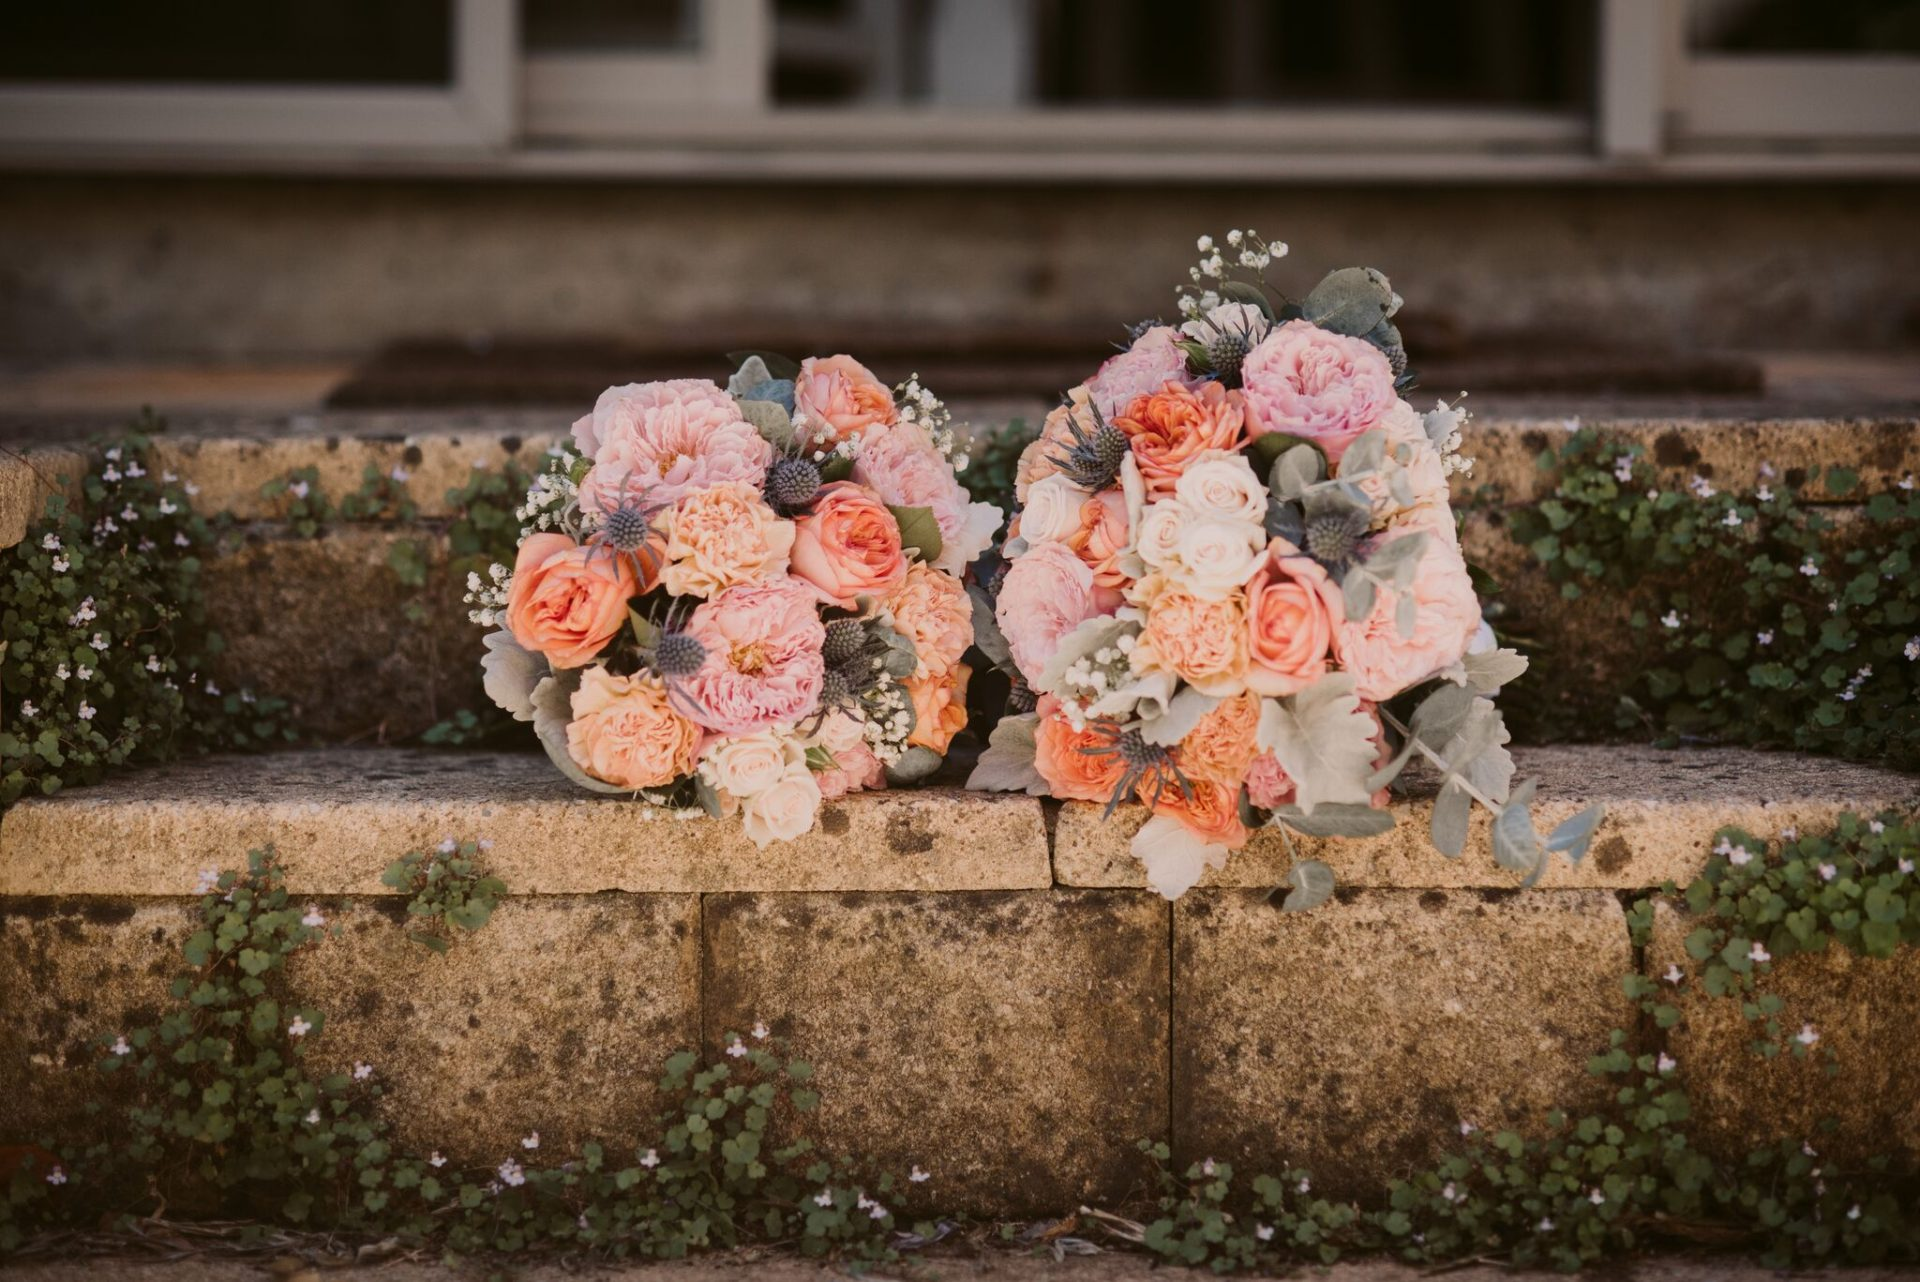 soft apricot and sea holly from Edans wedding